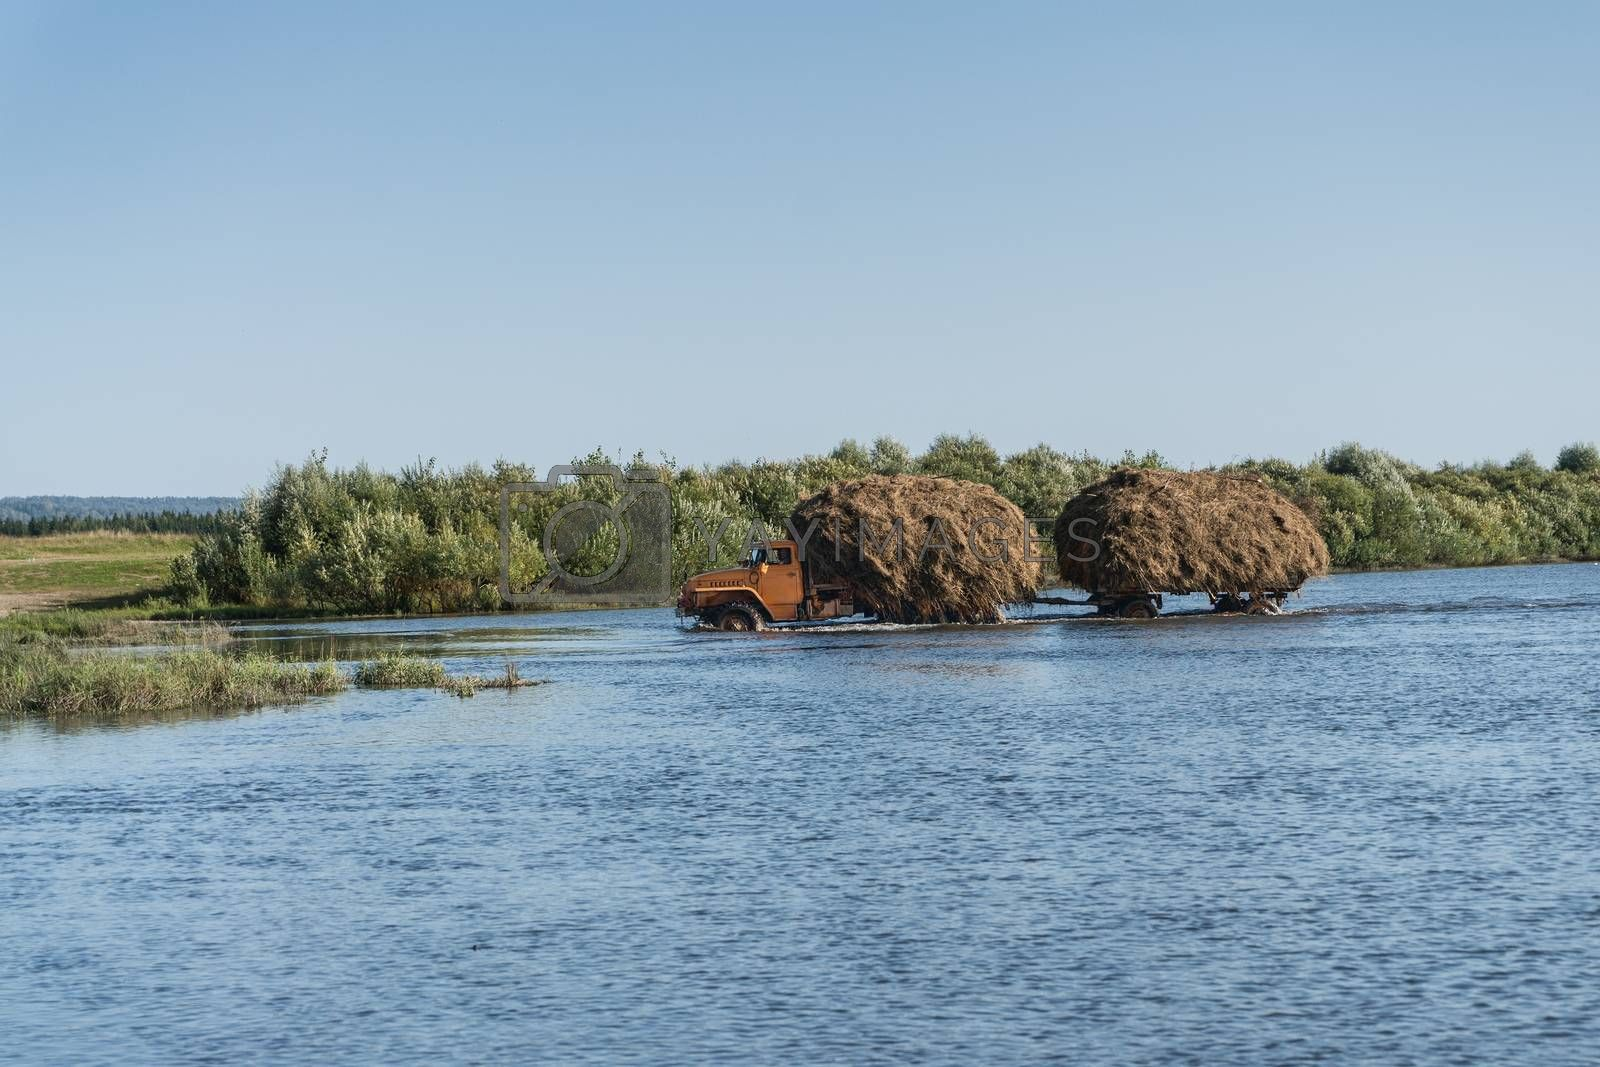 A truck with a trailer carries hay through the river